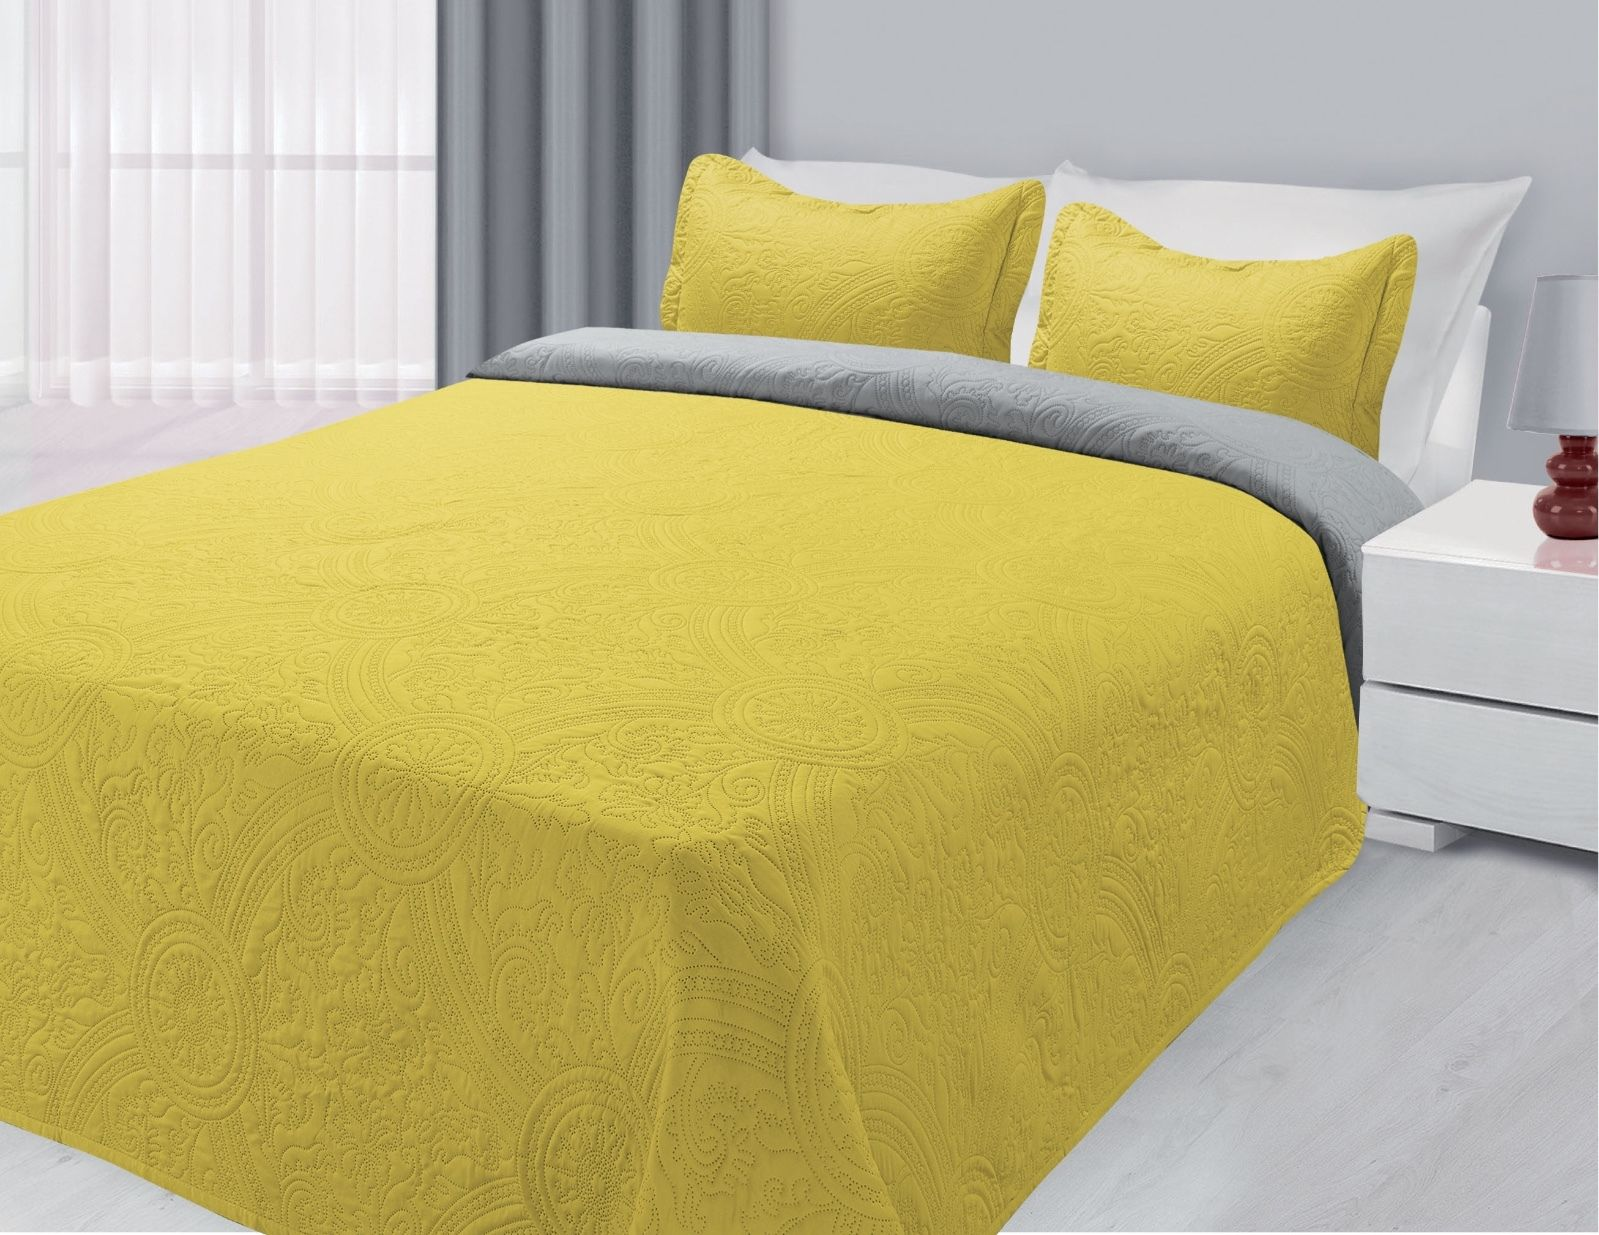 3-Piece Reversible Quilted Bedspread Coverlet Yellow & Gray King Size by